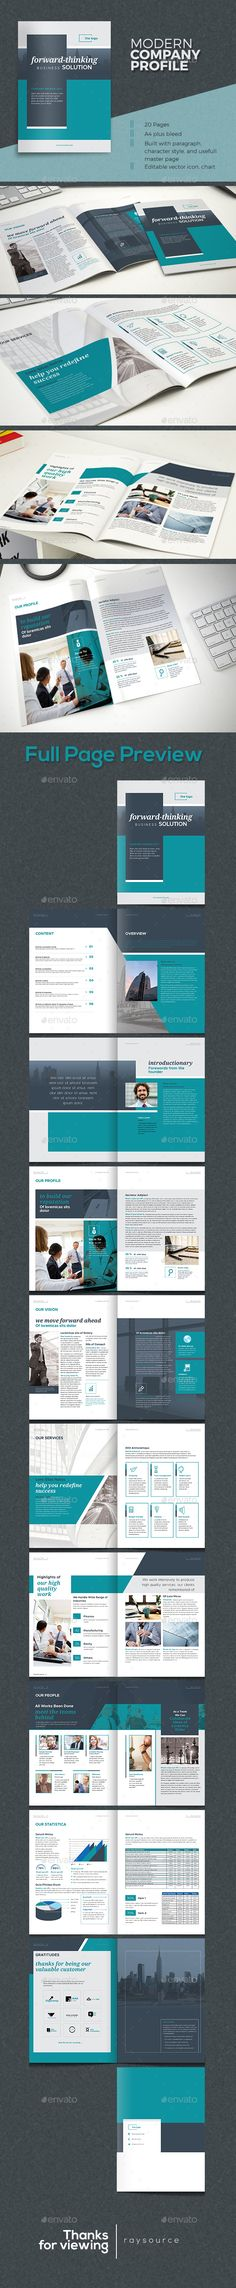 The Company Profile Company profile, Brochure template and Brochures - company profile templates word